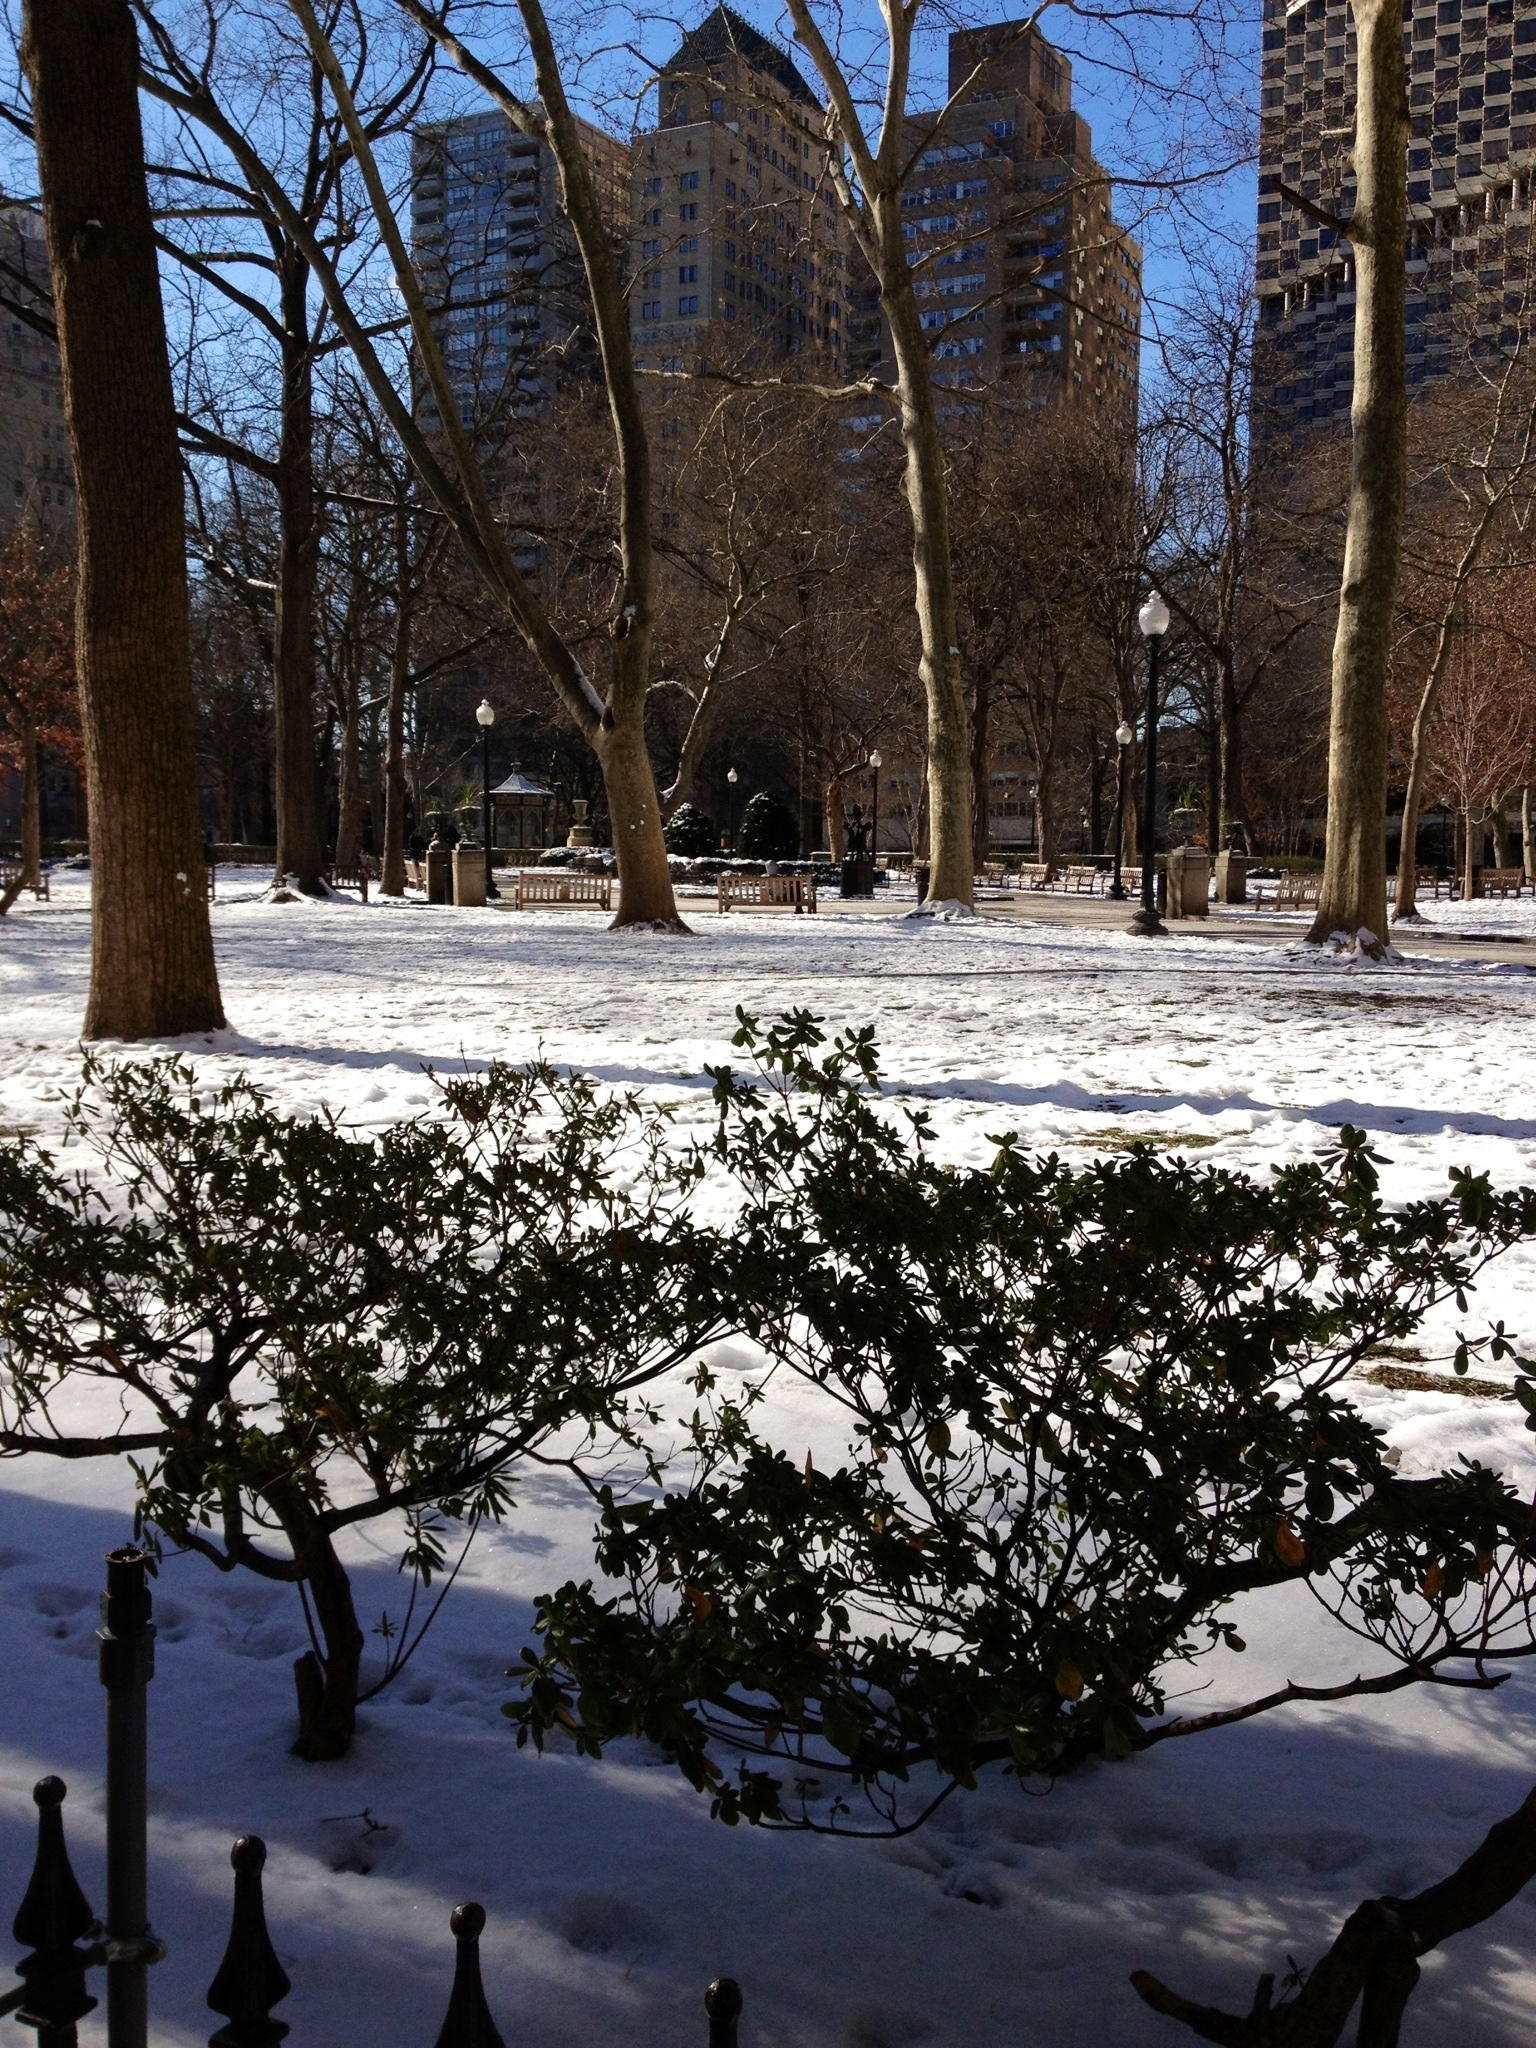 Rittenhouse park in Philadelphia, PA on a sunny, snowy winter day via Her Philly.